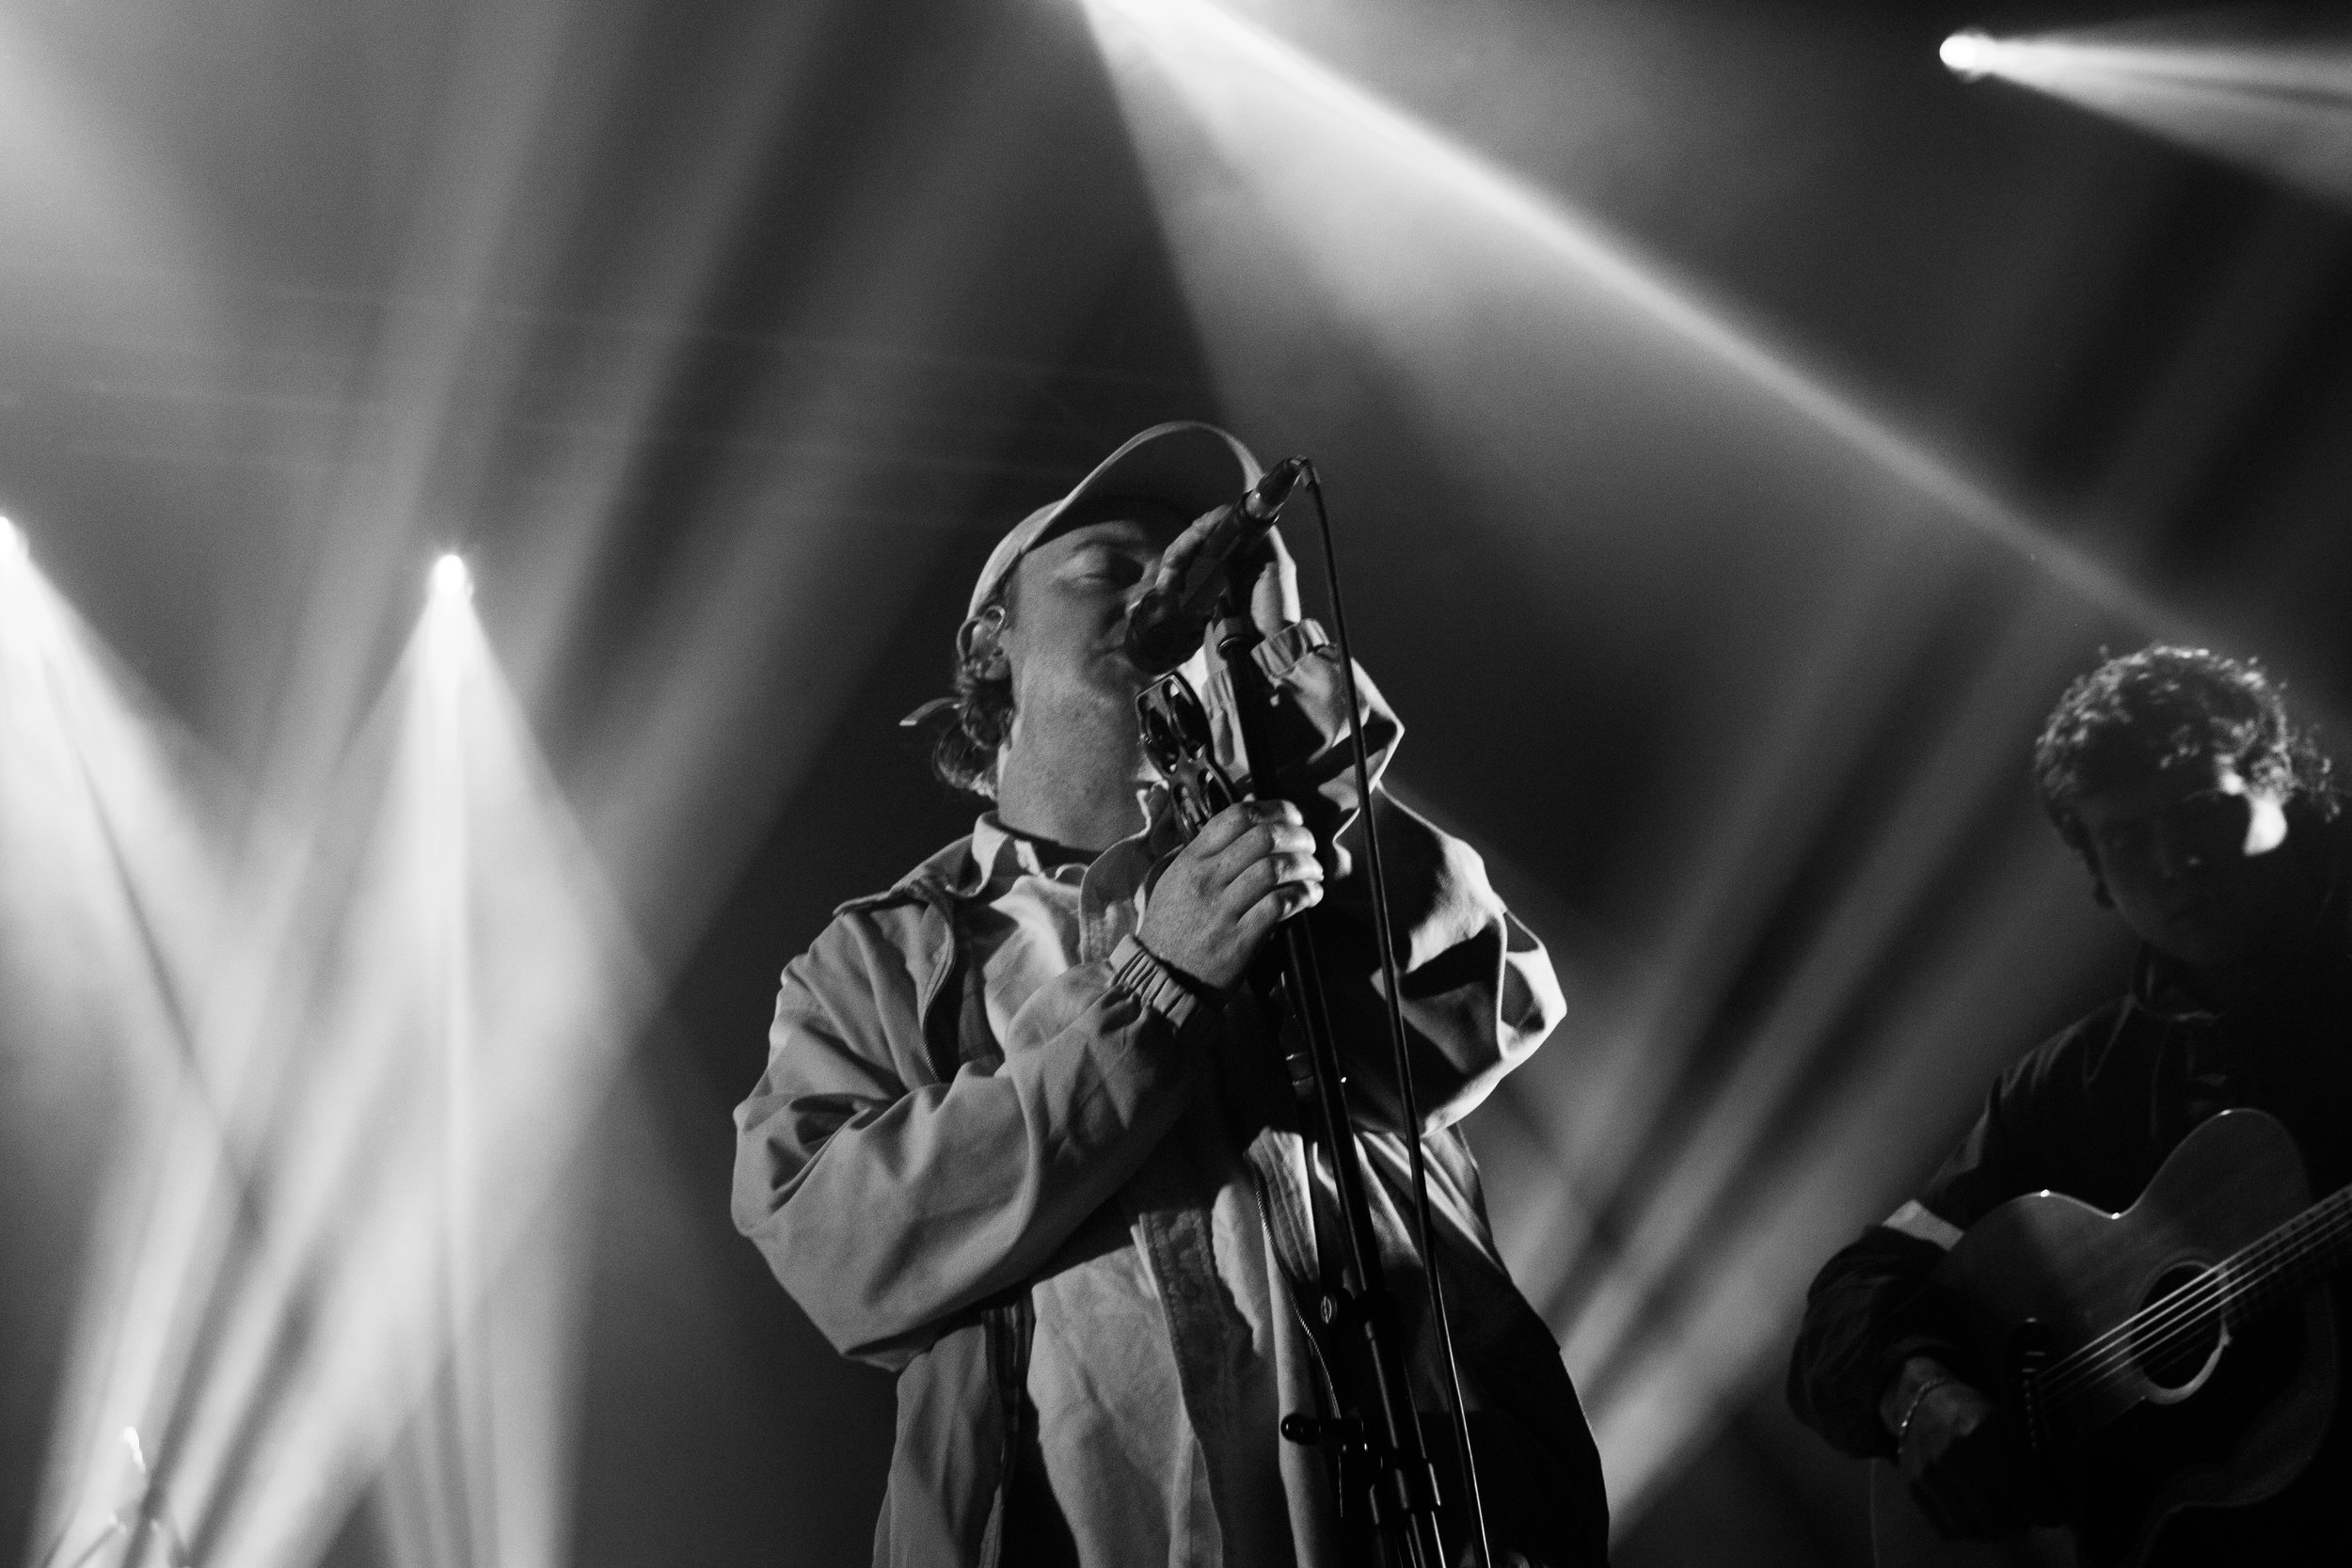 DMAs - O2 Academy , Newcastle - 10-04-19 Picture by Will Gorman Photo-5585.JPG